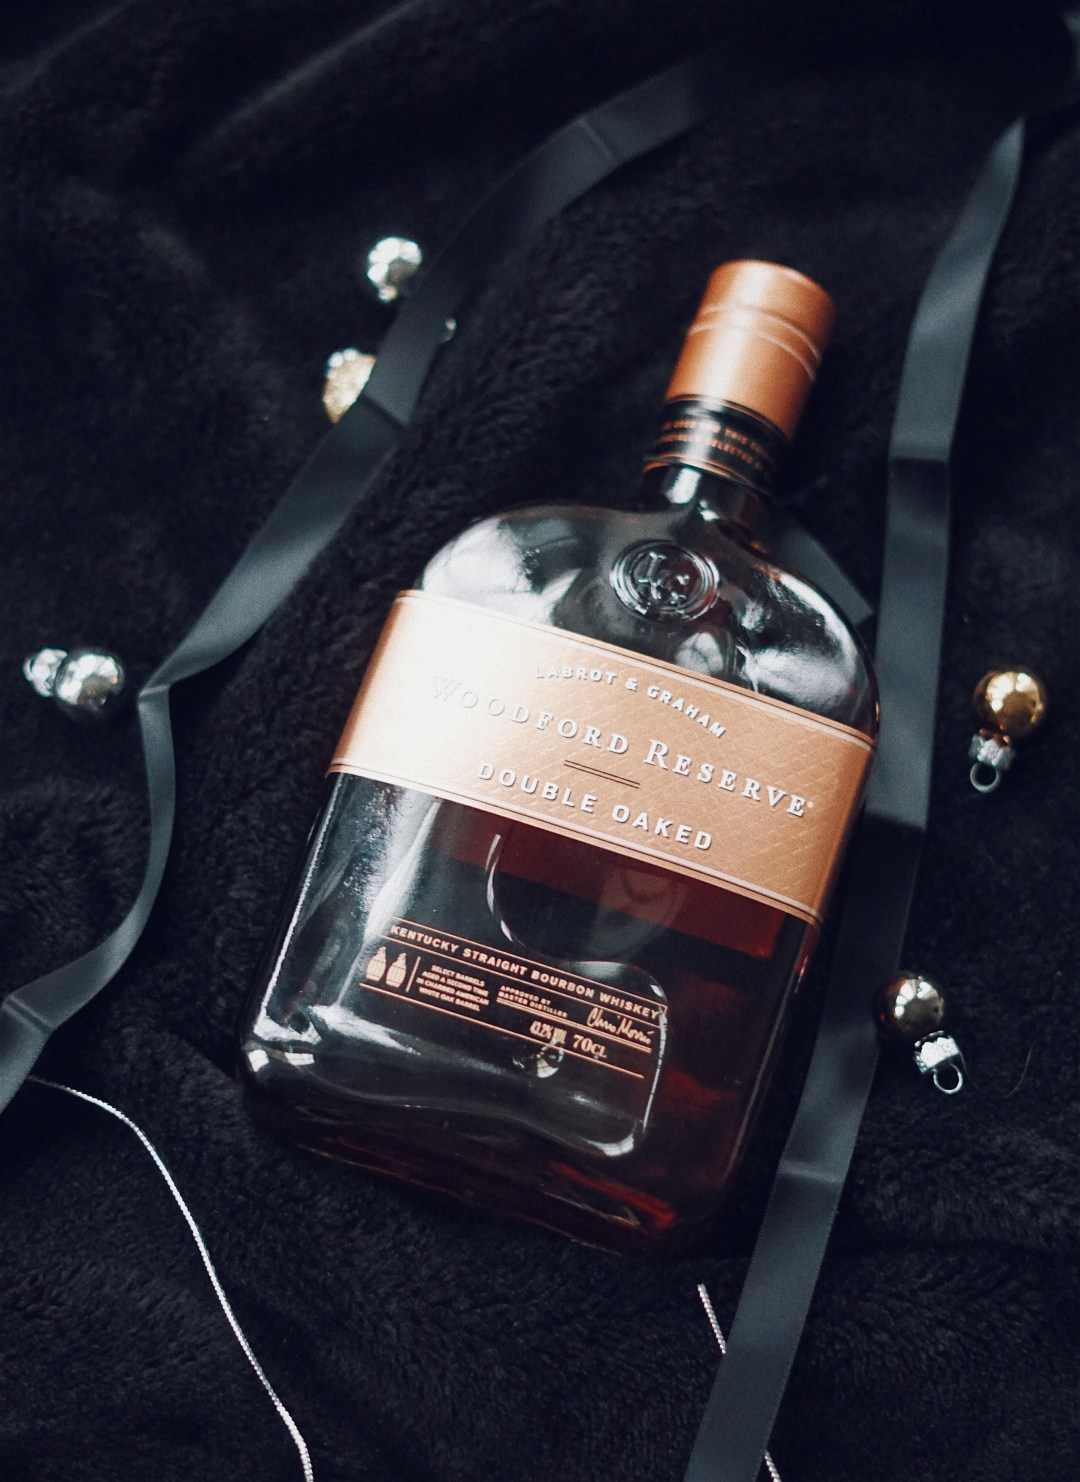 Season's Givings. The Last Minute Christmas Gift Guide featuring Molton Brown, Cornerstone, Case Station, Ted Baker, Woodford Reserve, Appleton Estate and Dr. Levy Switzerland. Blog by Skirmantas Petraitis.